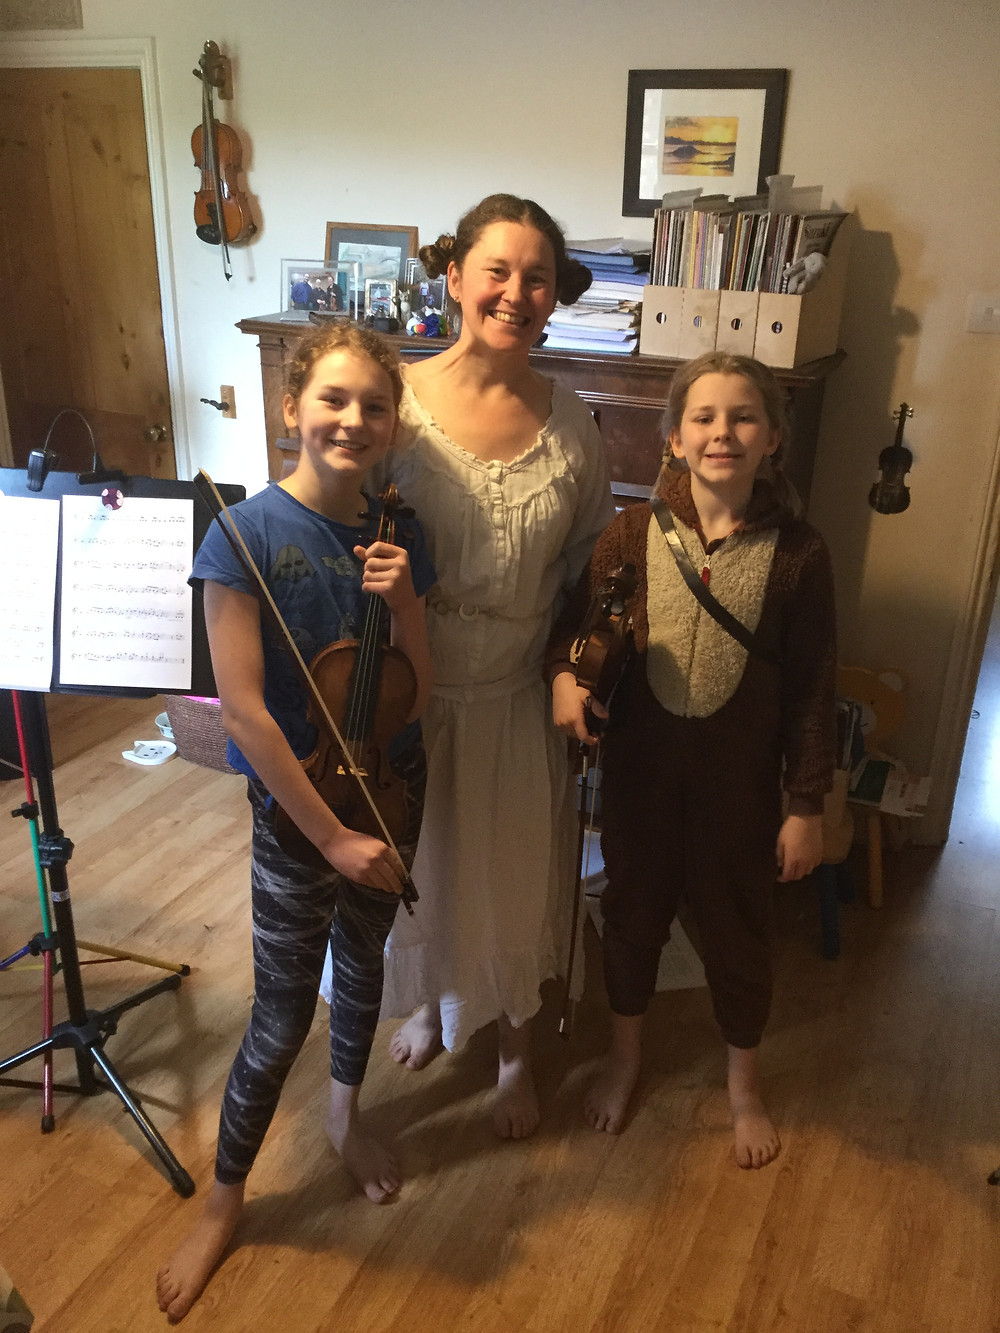 Mother and two daughters dressed up as Star wars characters